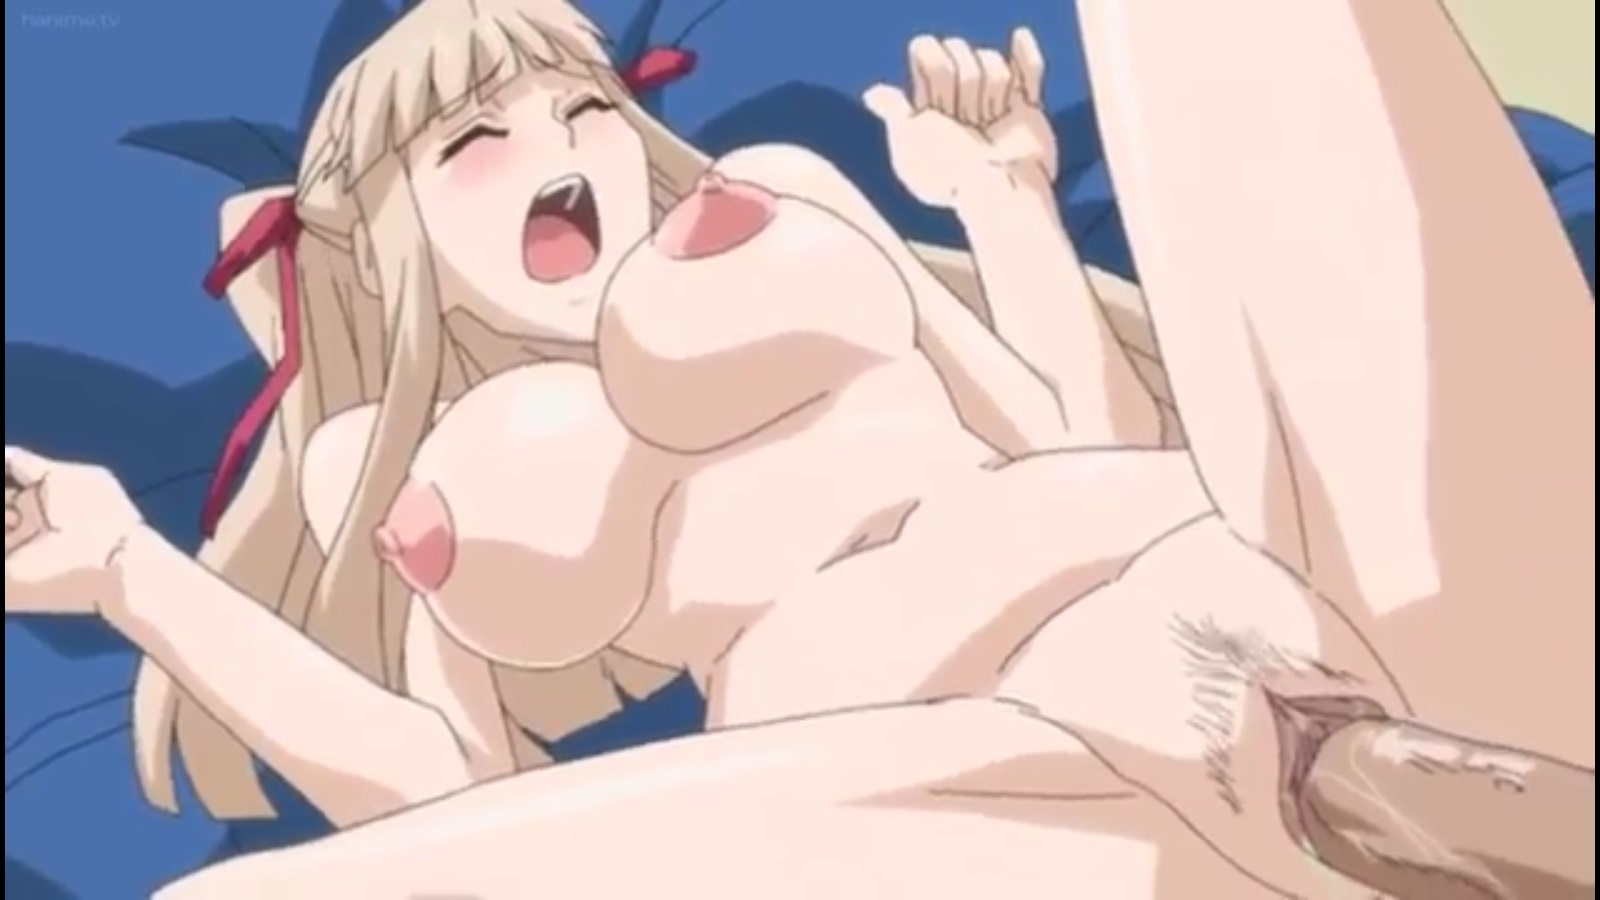 sex ja porno hd anime fuck